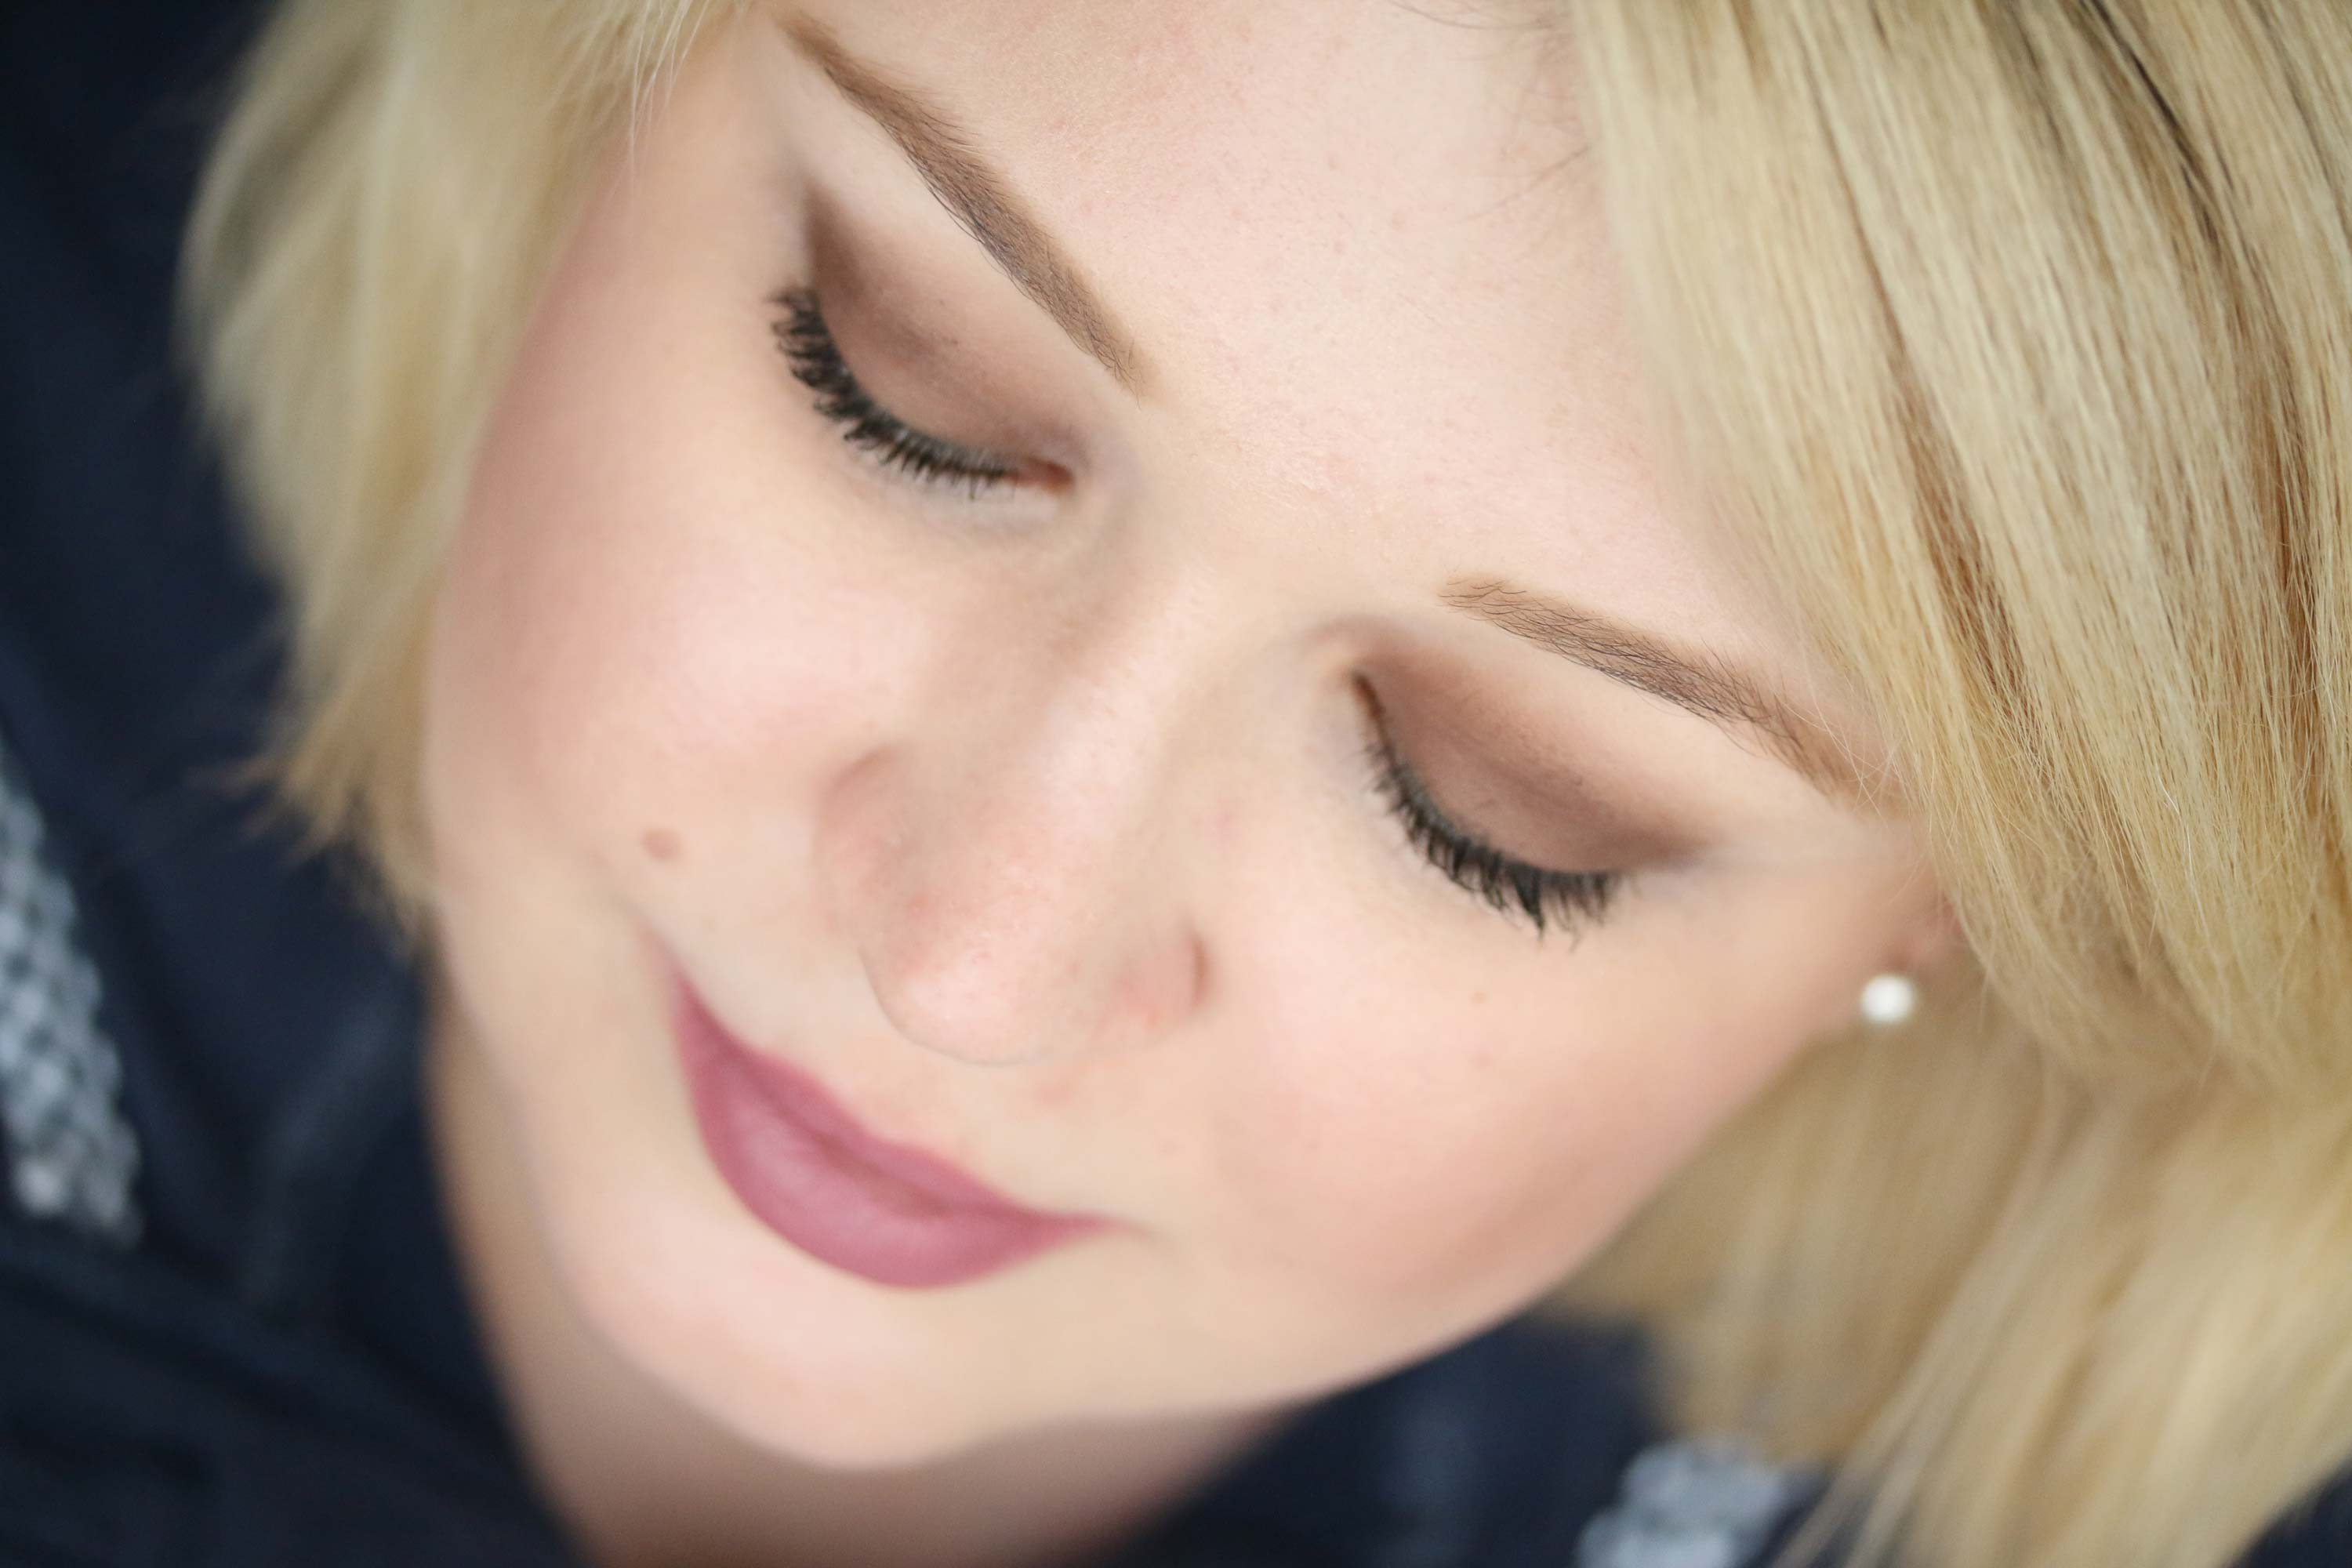 urban-decay-naked-ultimate-basics-look-3